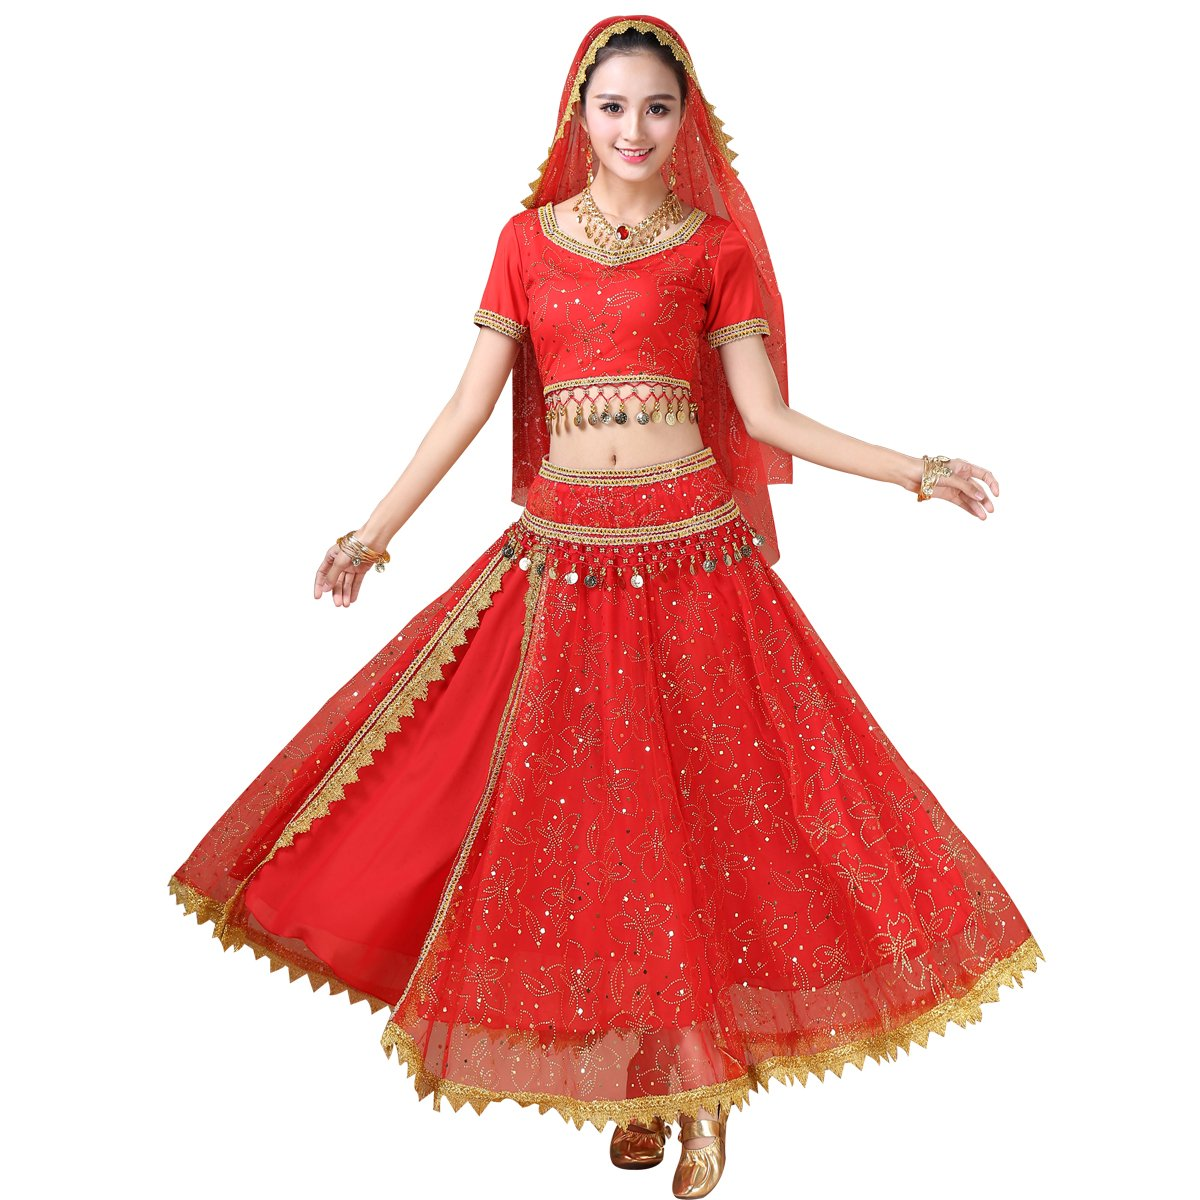 MISI CHAO Belly Dance Costume - Bollywood Dress Chiffon Dance Dress for Women/Girls MISICHAO HY